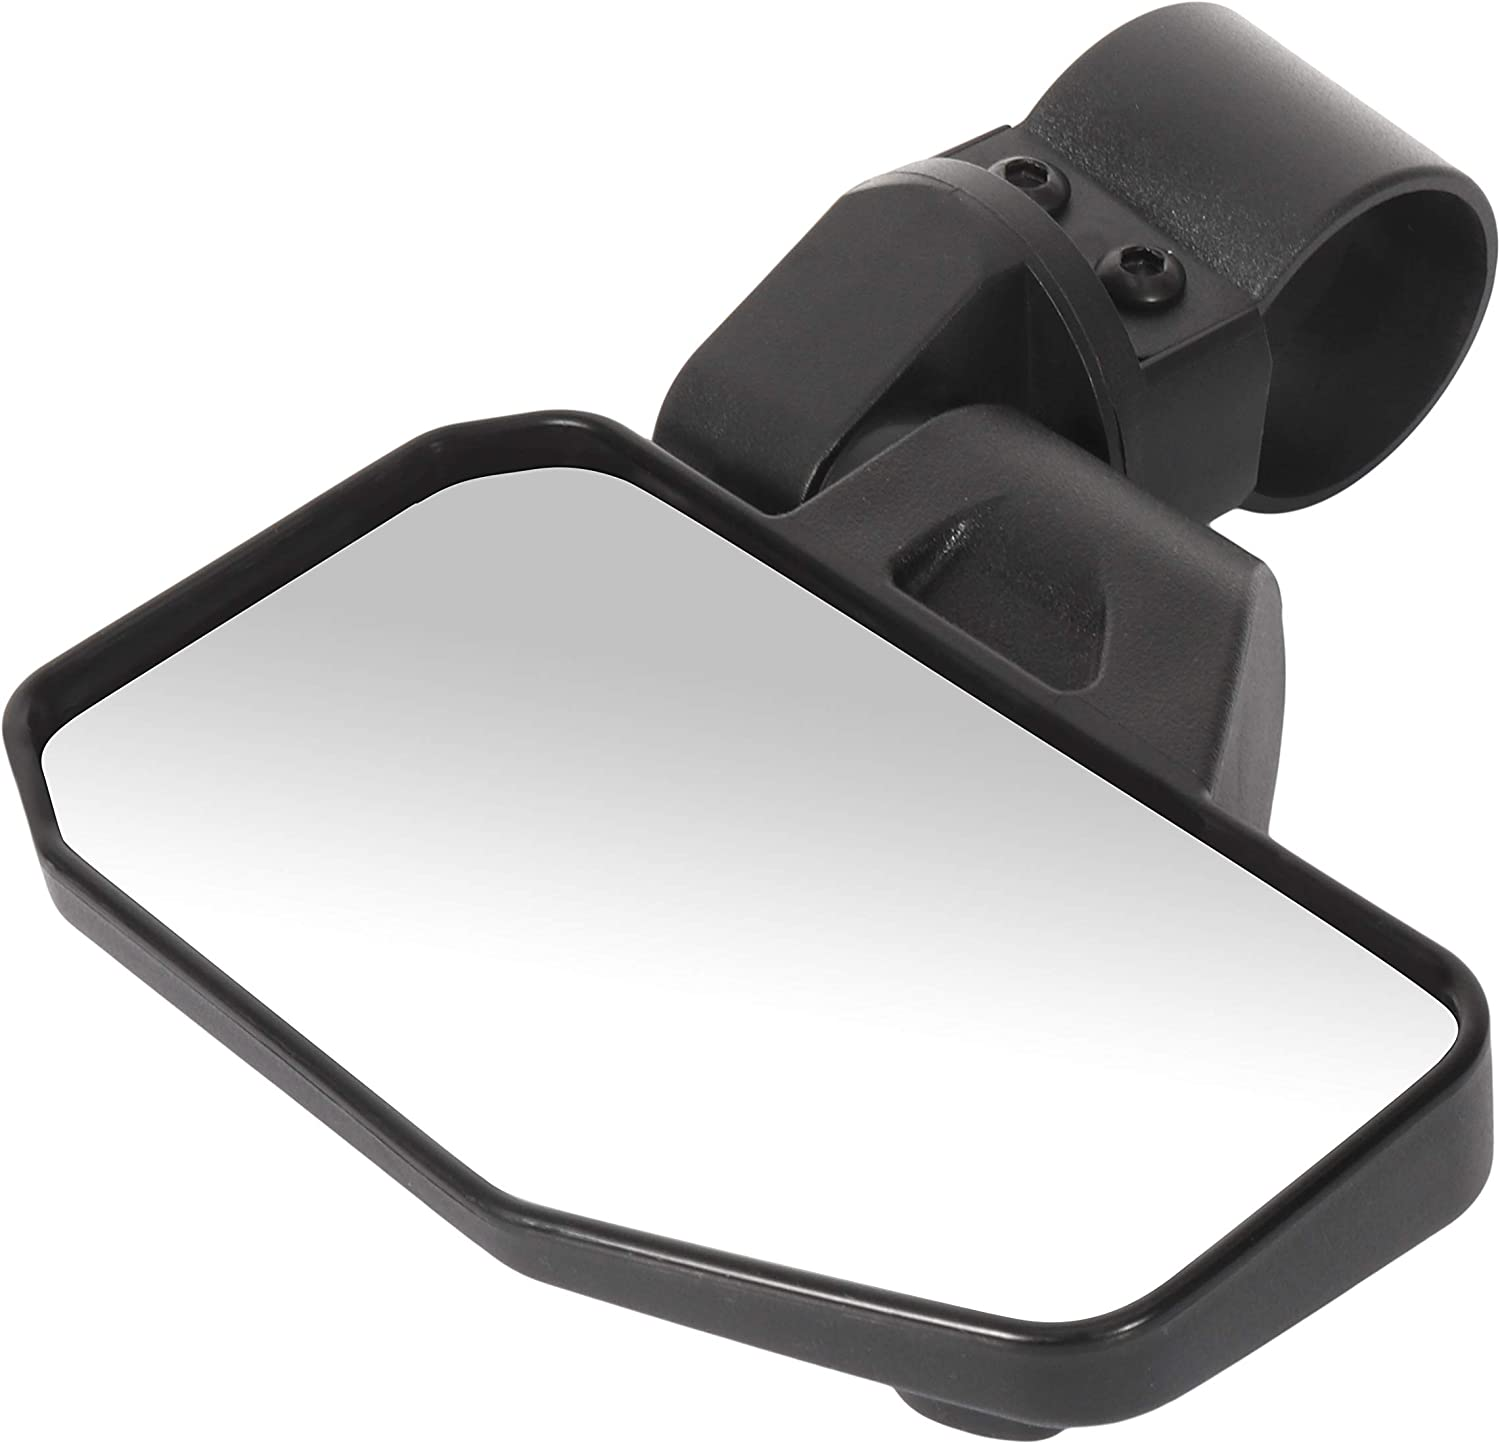 Driver and Passenger Manual Side View Mirrors Door Mounted Replacement for Nissan Pickup Truck SUV 9630211G7A K630111G26